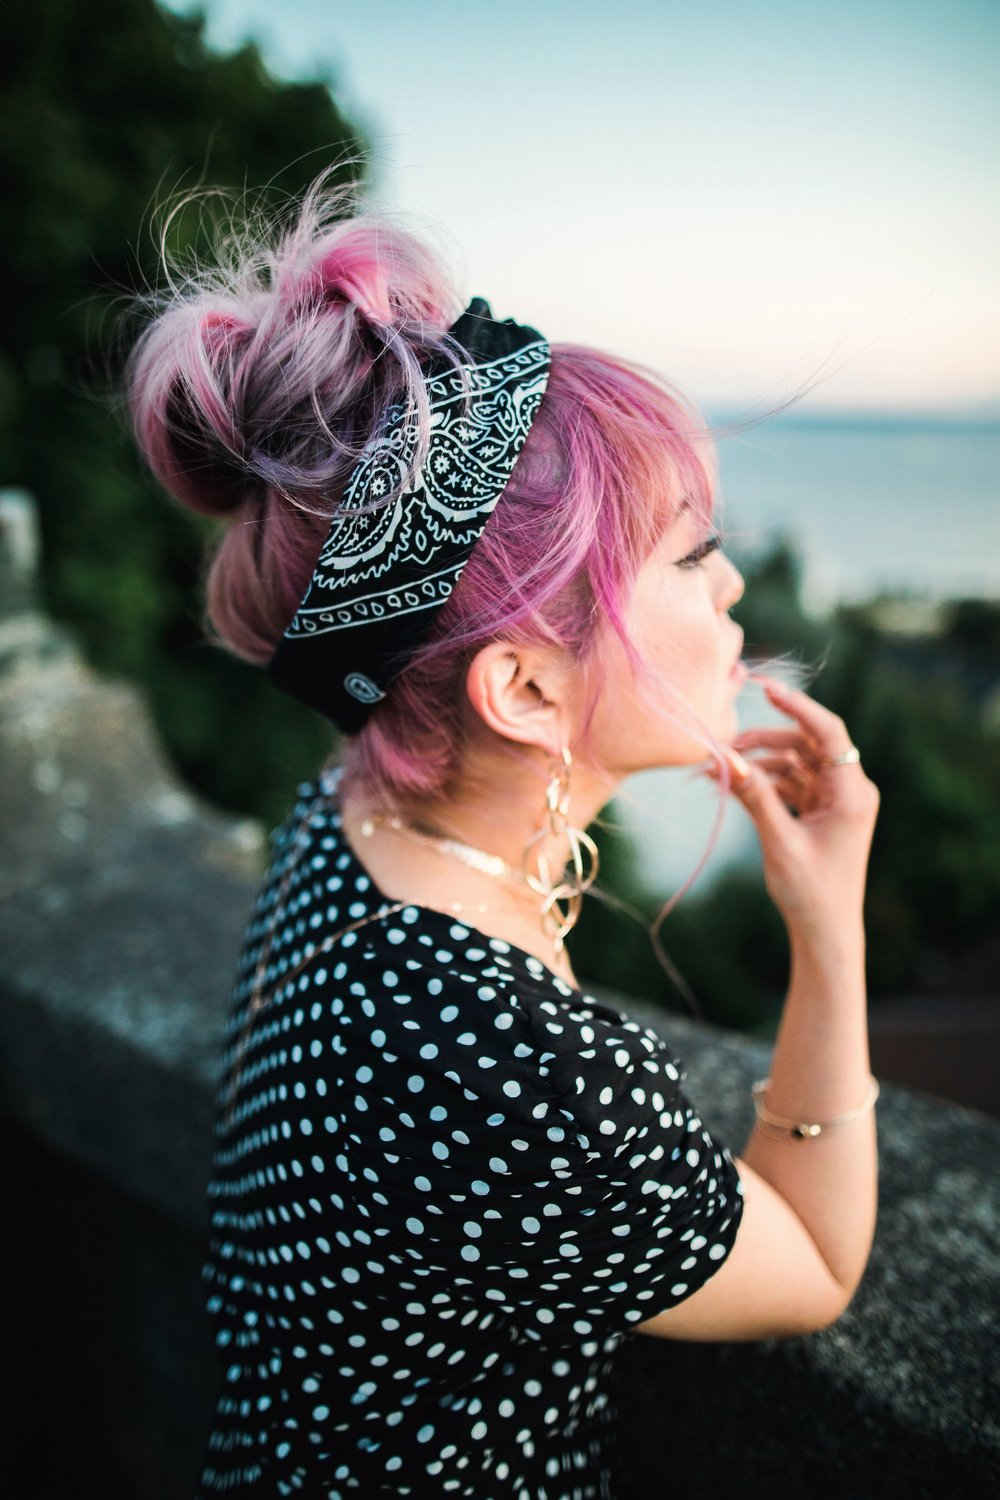 ASOS Polkadot Romper_Urban Outfitter Bandana_Zara Statement Earrings_H&M White Crossbody Bag_ShoeDazzle Yellow Lace up Wedge Sandals_Aikas Love Closet_Seattle Fashion Style Blogger_Japanese_Pink Hair_Street Snap_Summer Style_Messy bun updo 2